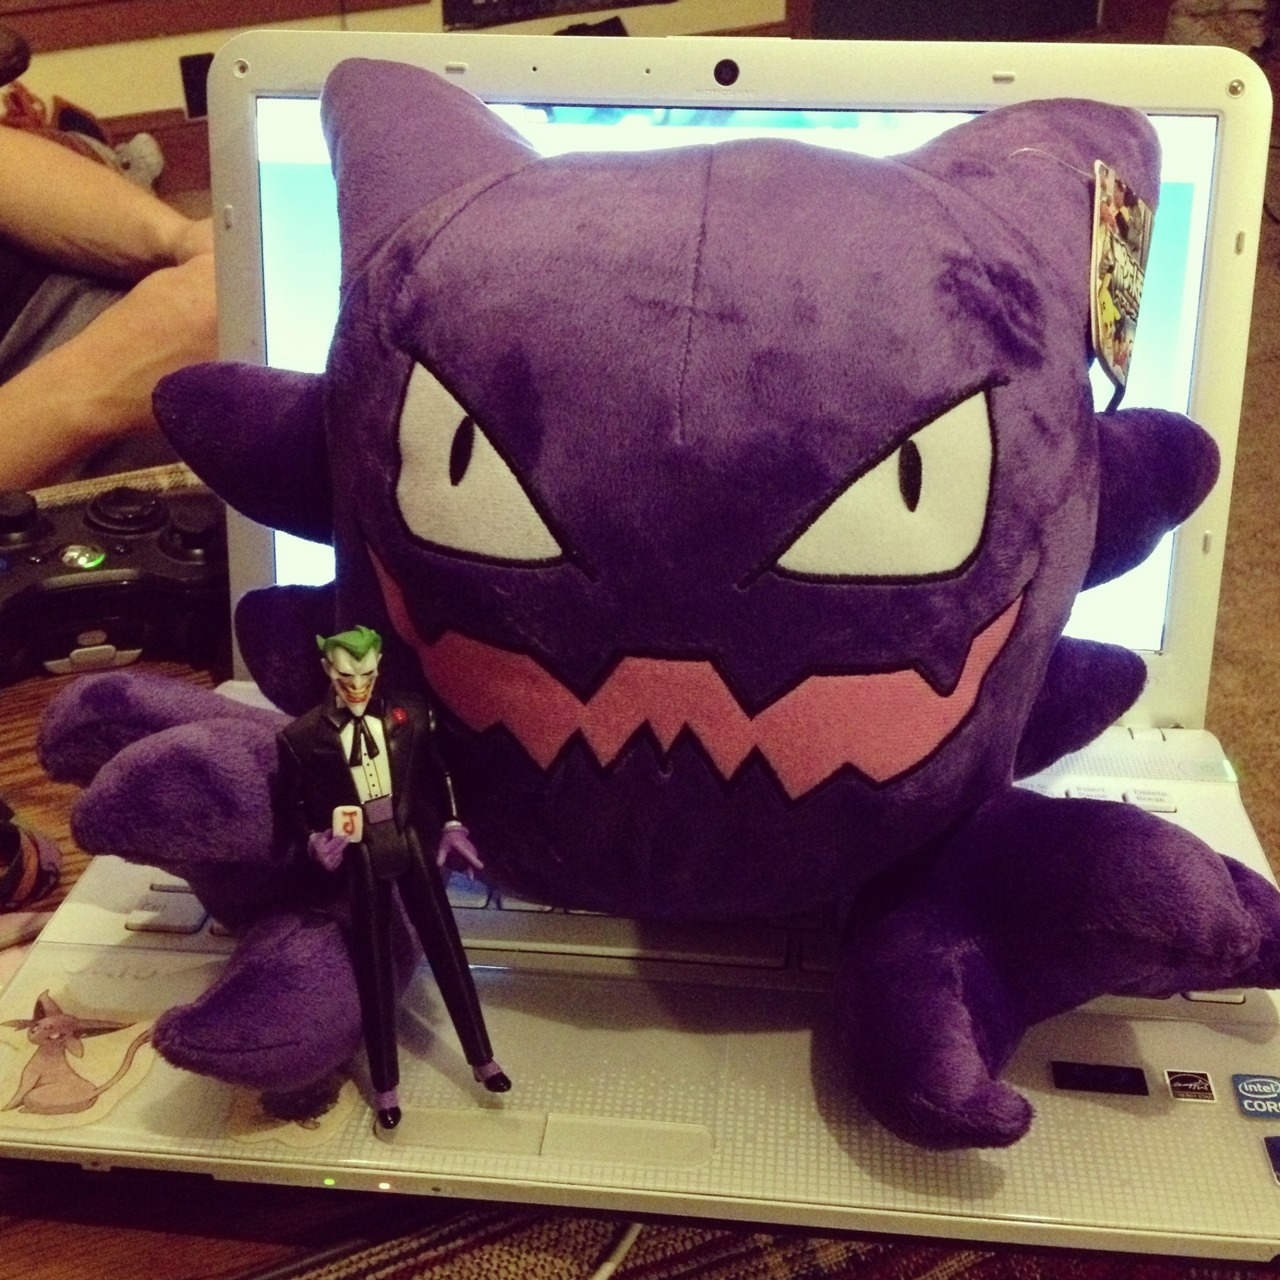 Jared gave me two early birthday presents. A huge plushy haunter and a joker action figure to add to my collection. :D